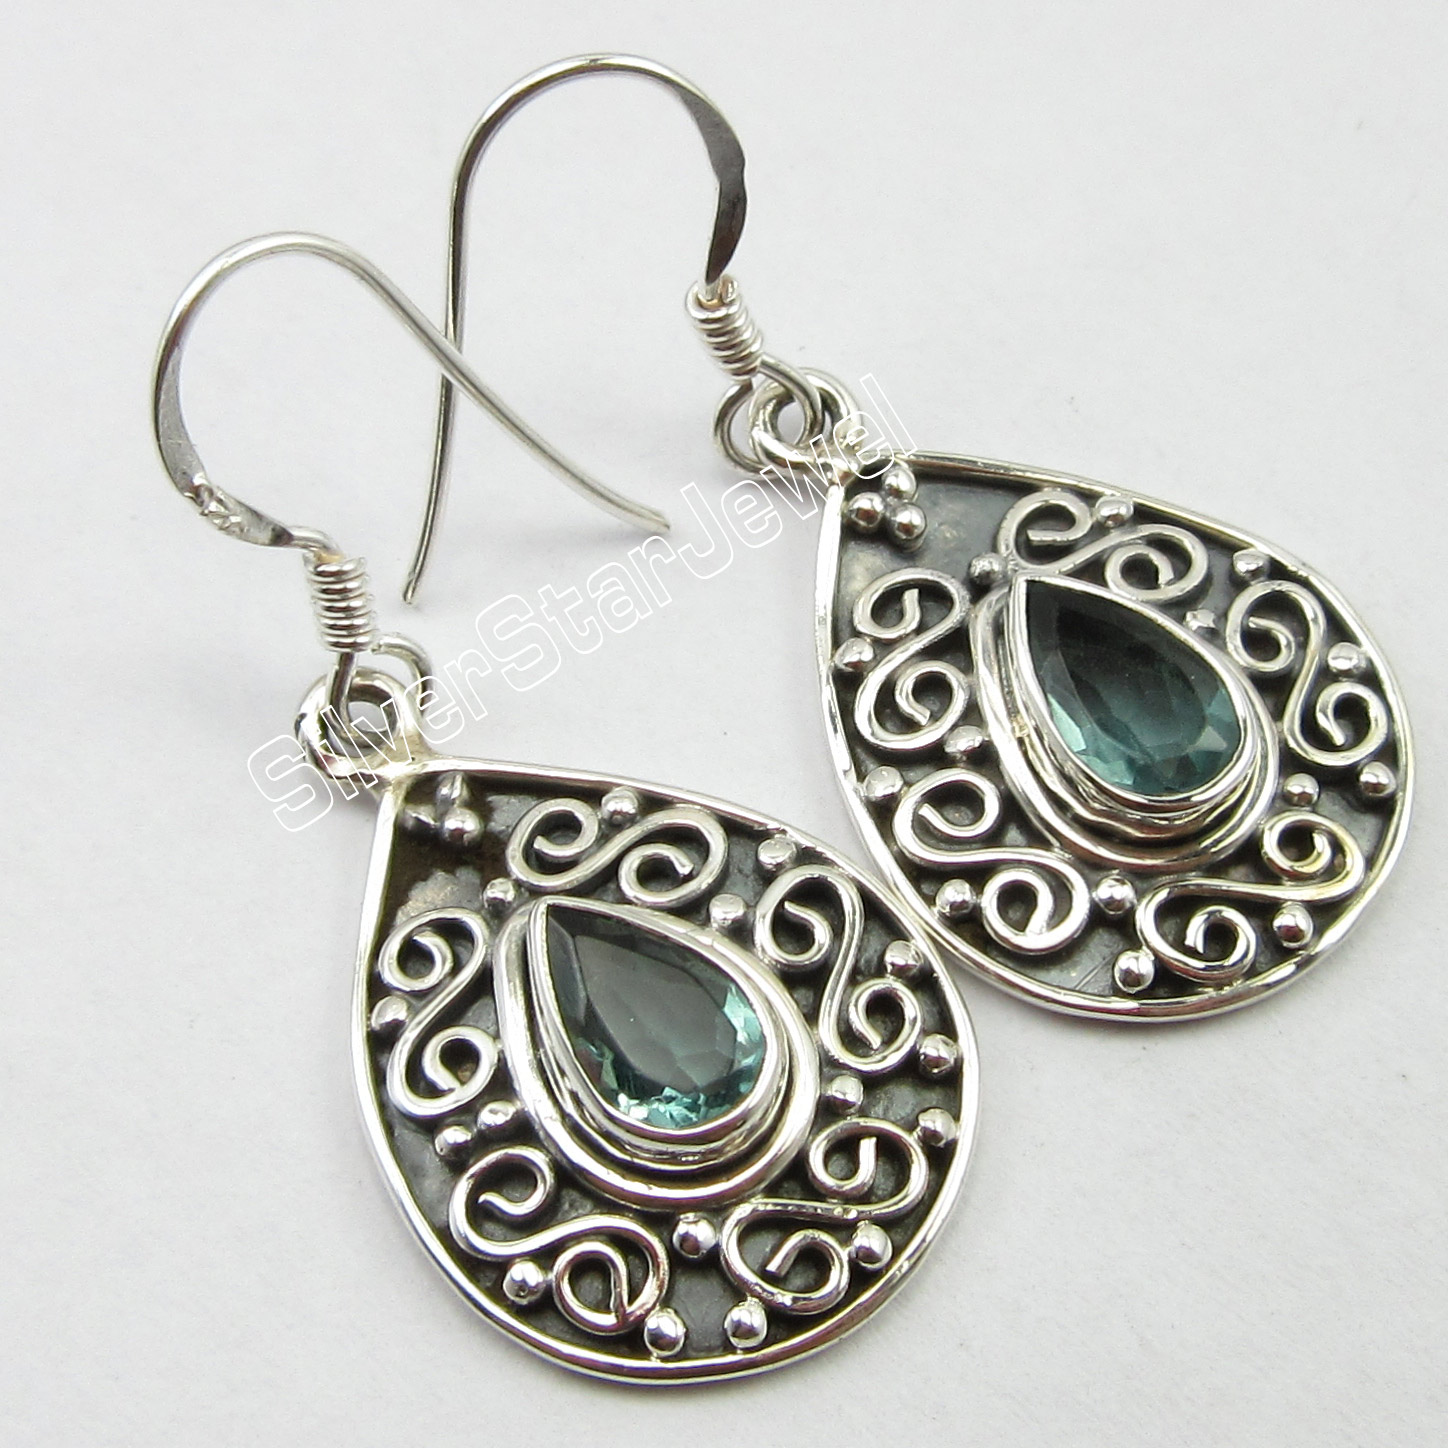 √Chanti International ANTIQUE LOOK Solid Silver Hot Selling